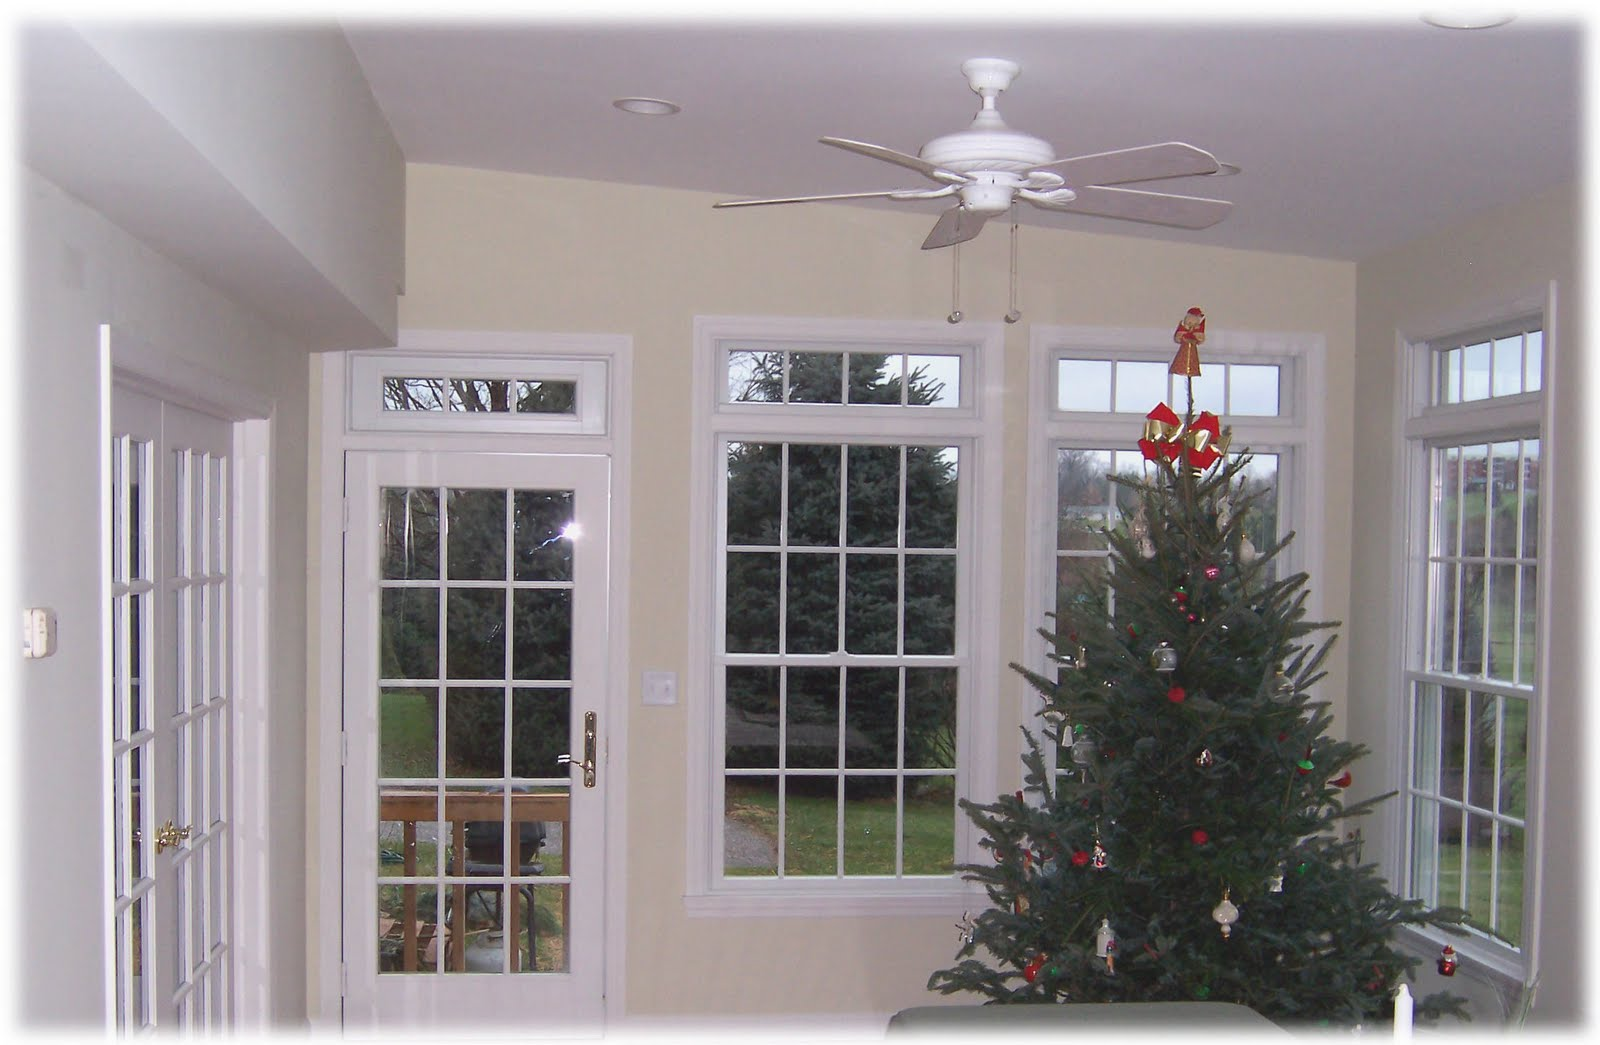 All about window window designs modern or old fashioned for Home on windows